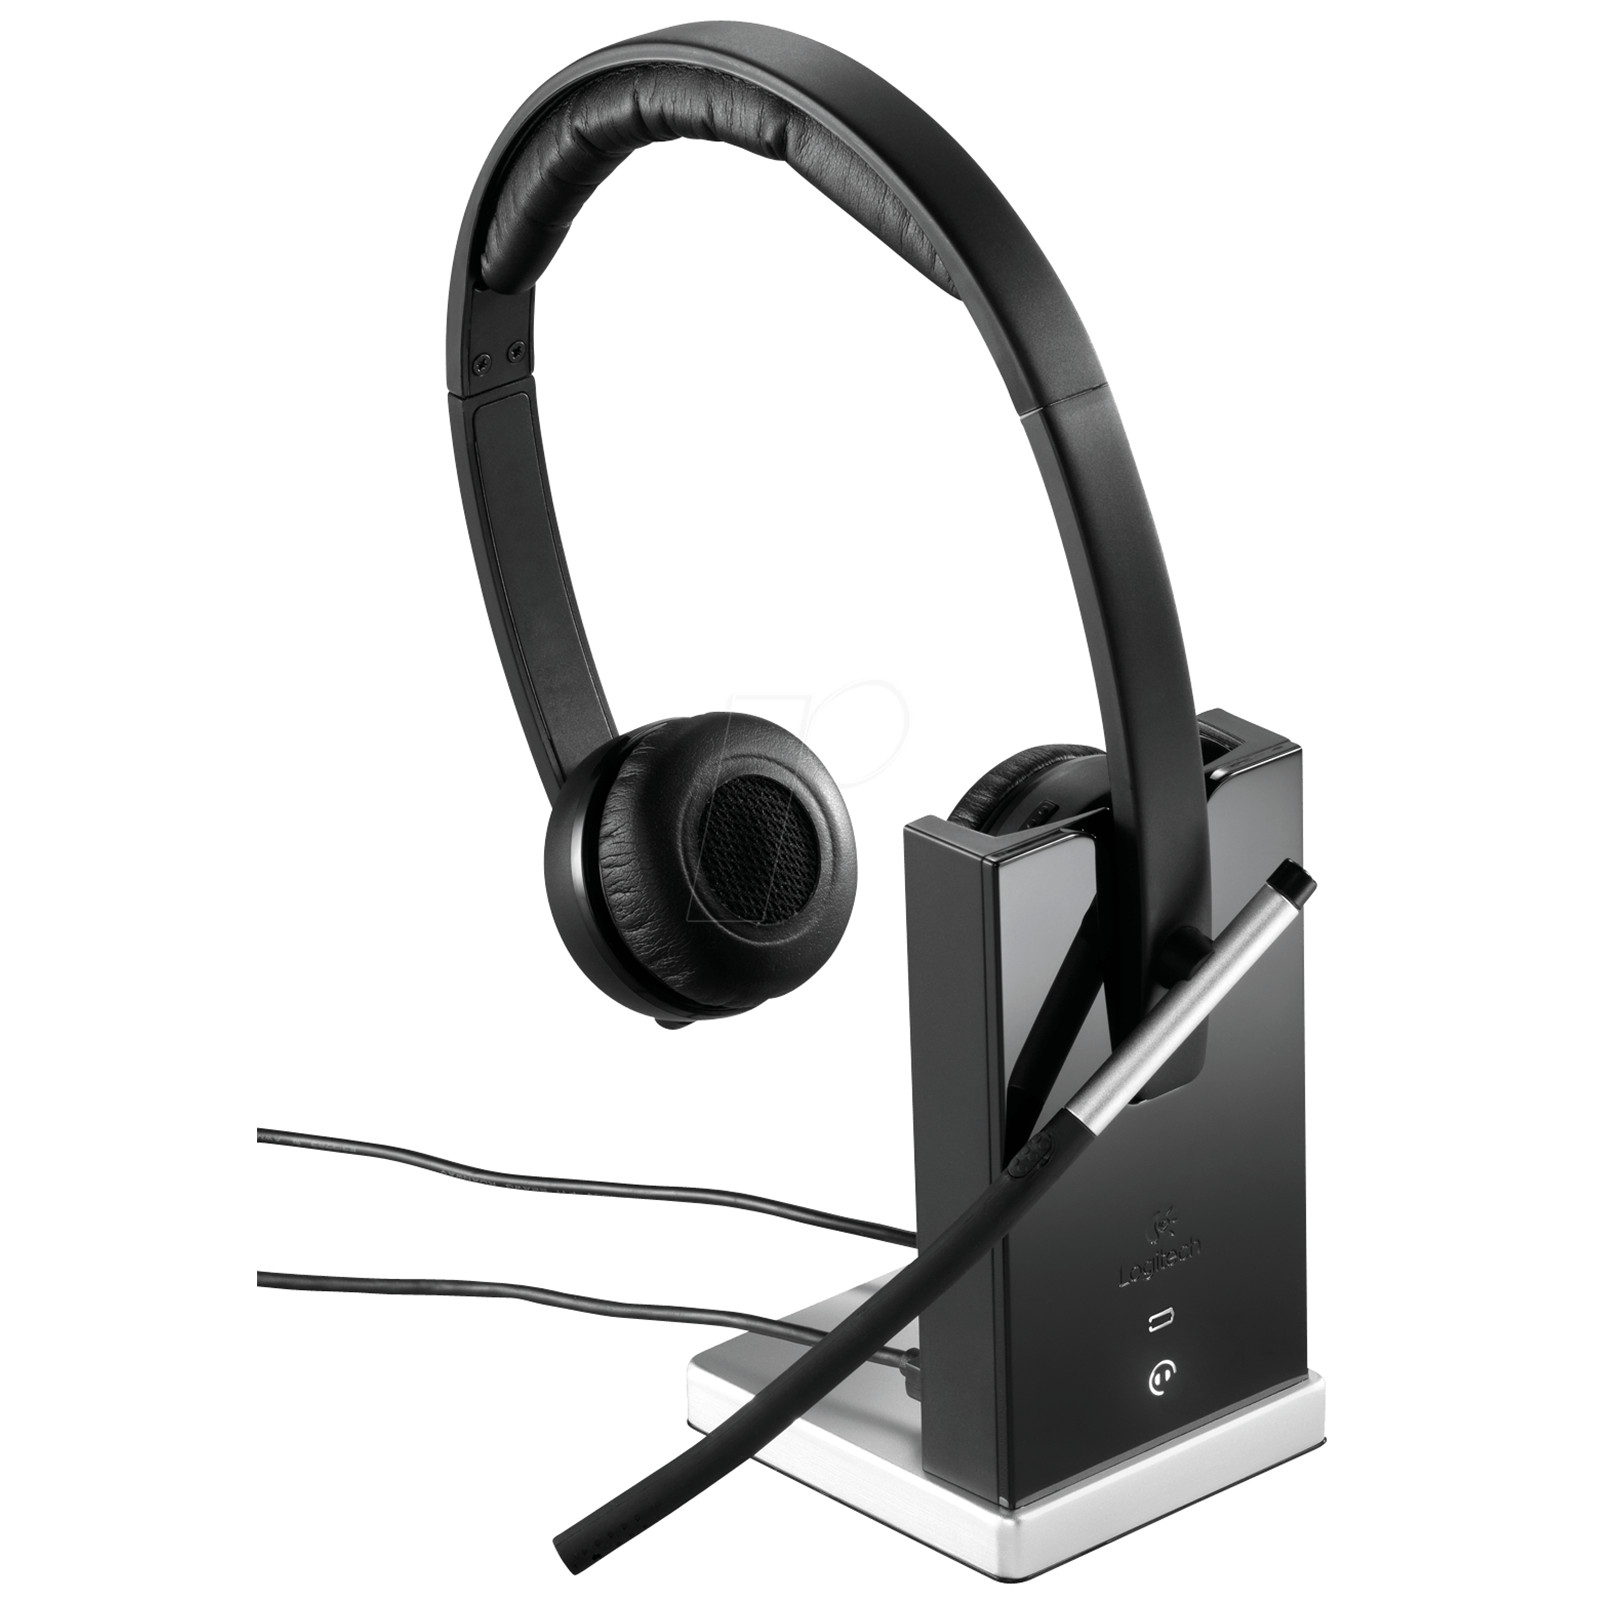 8d6a2347a1e Logitech H820e Business Conference Grade Long Range Stereo Wireless Headset,  Enterprise Quality Audio with Intuitive Call Controls, 100 Meters Wireless  With ...